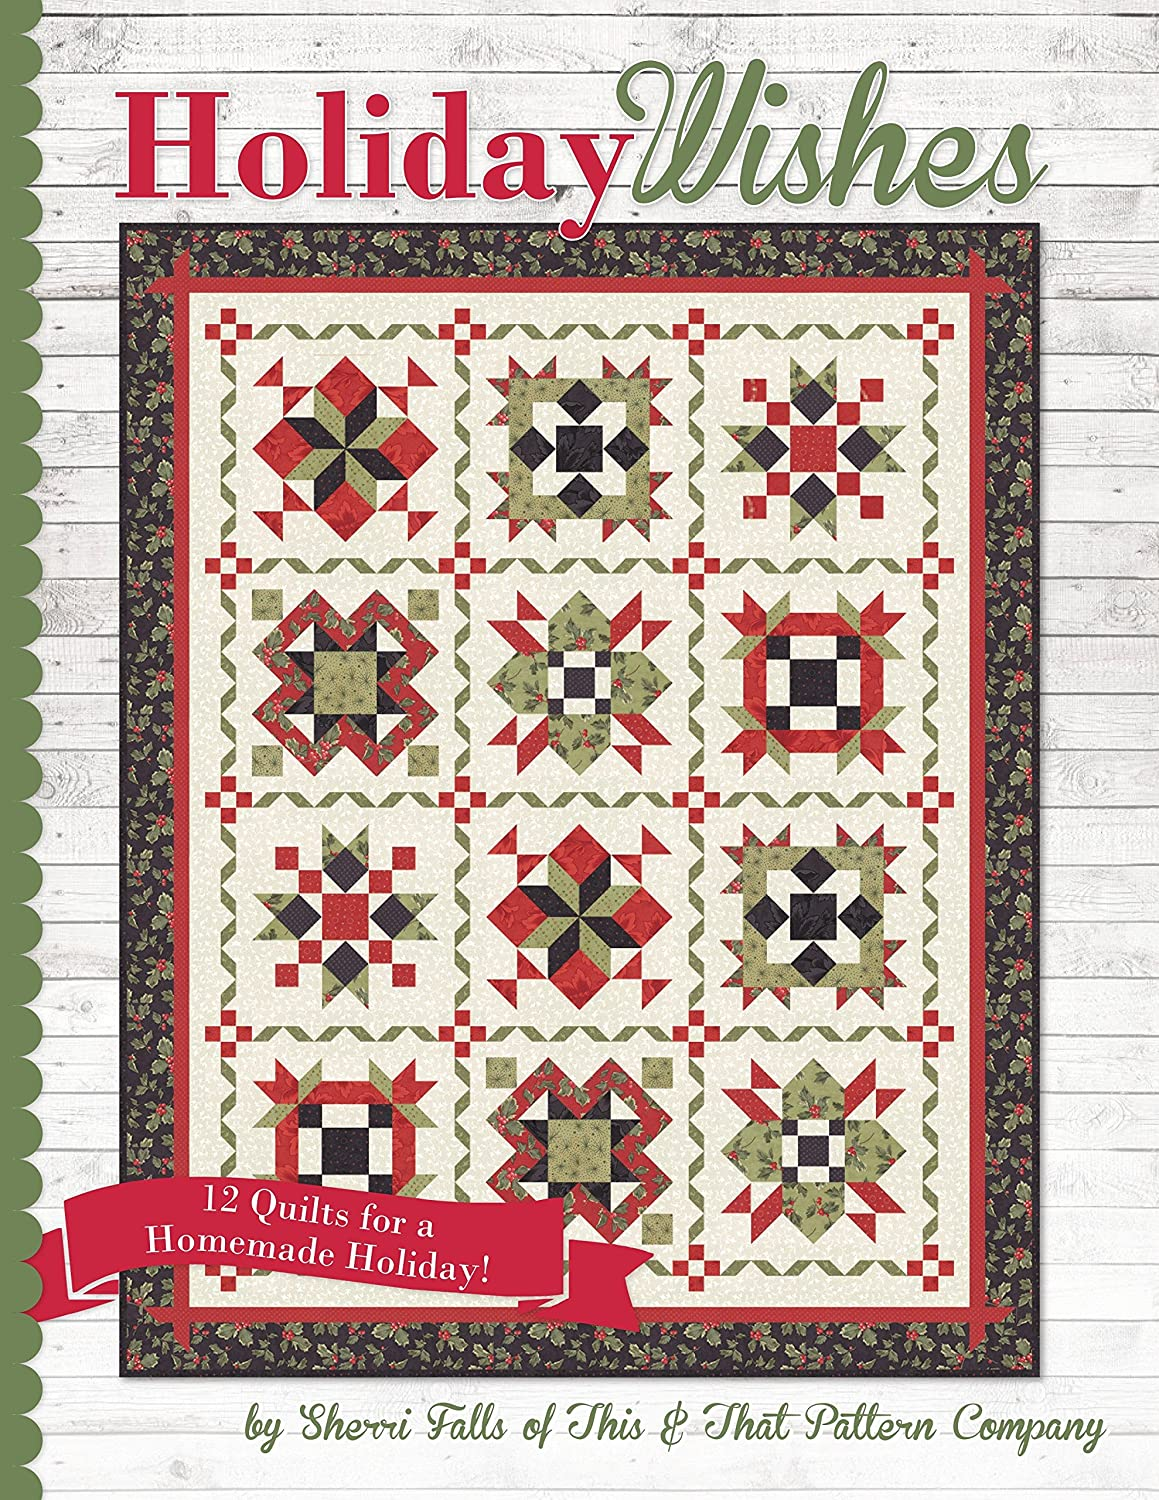 12 Quilts for a Homemade Holiday Book Holiday Wishes